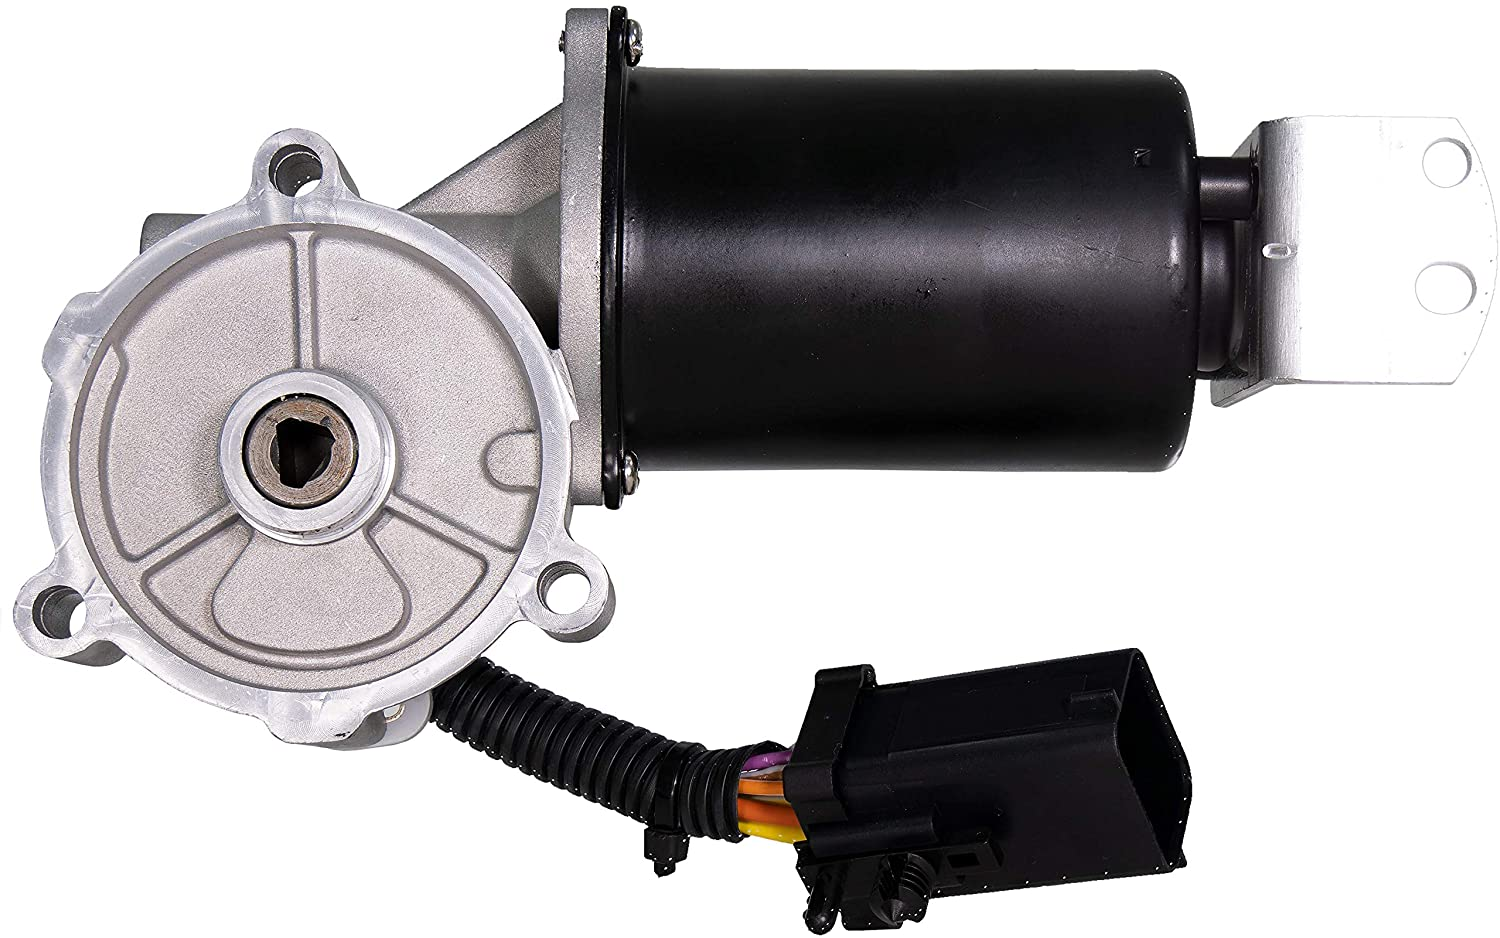 Replaces 4L3Z7G360BA, 5L3Z-7G360-A, 8L3Z7G360-A APDTY 711022 Transfer Case Shift Motor Fits 2004-2008 Ford F150 or Lincoln Mark LT 4-Wheel Drive 4WD Pickup Truck